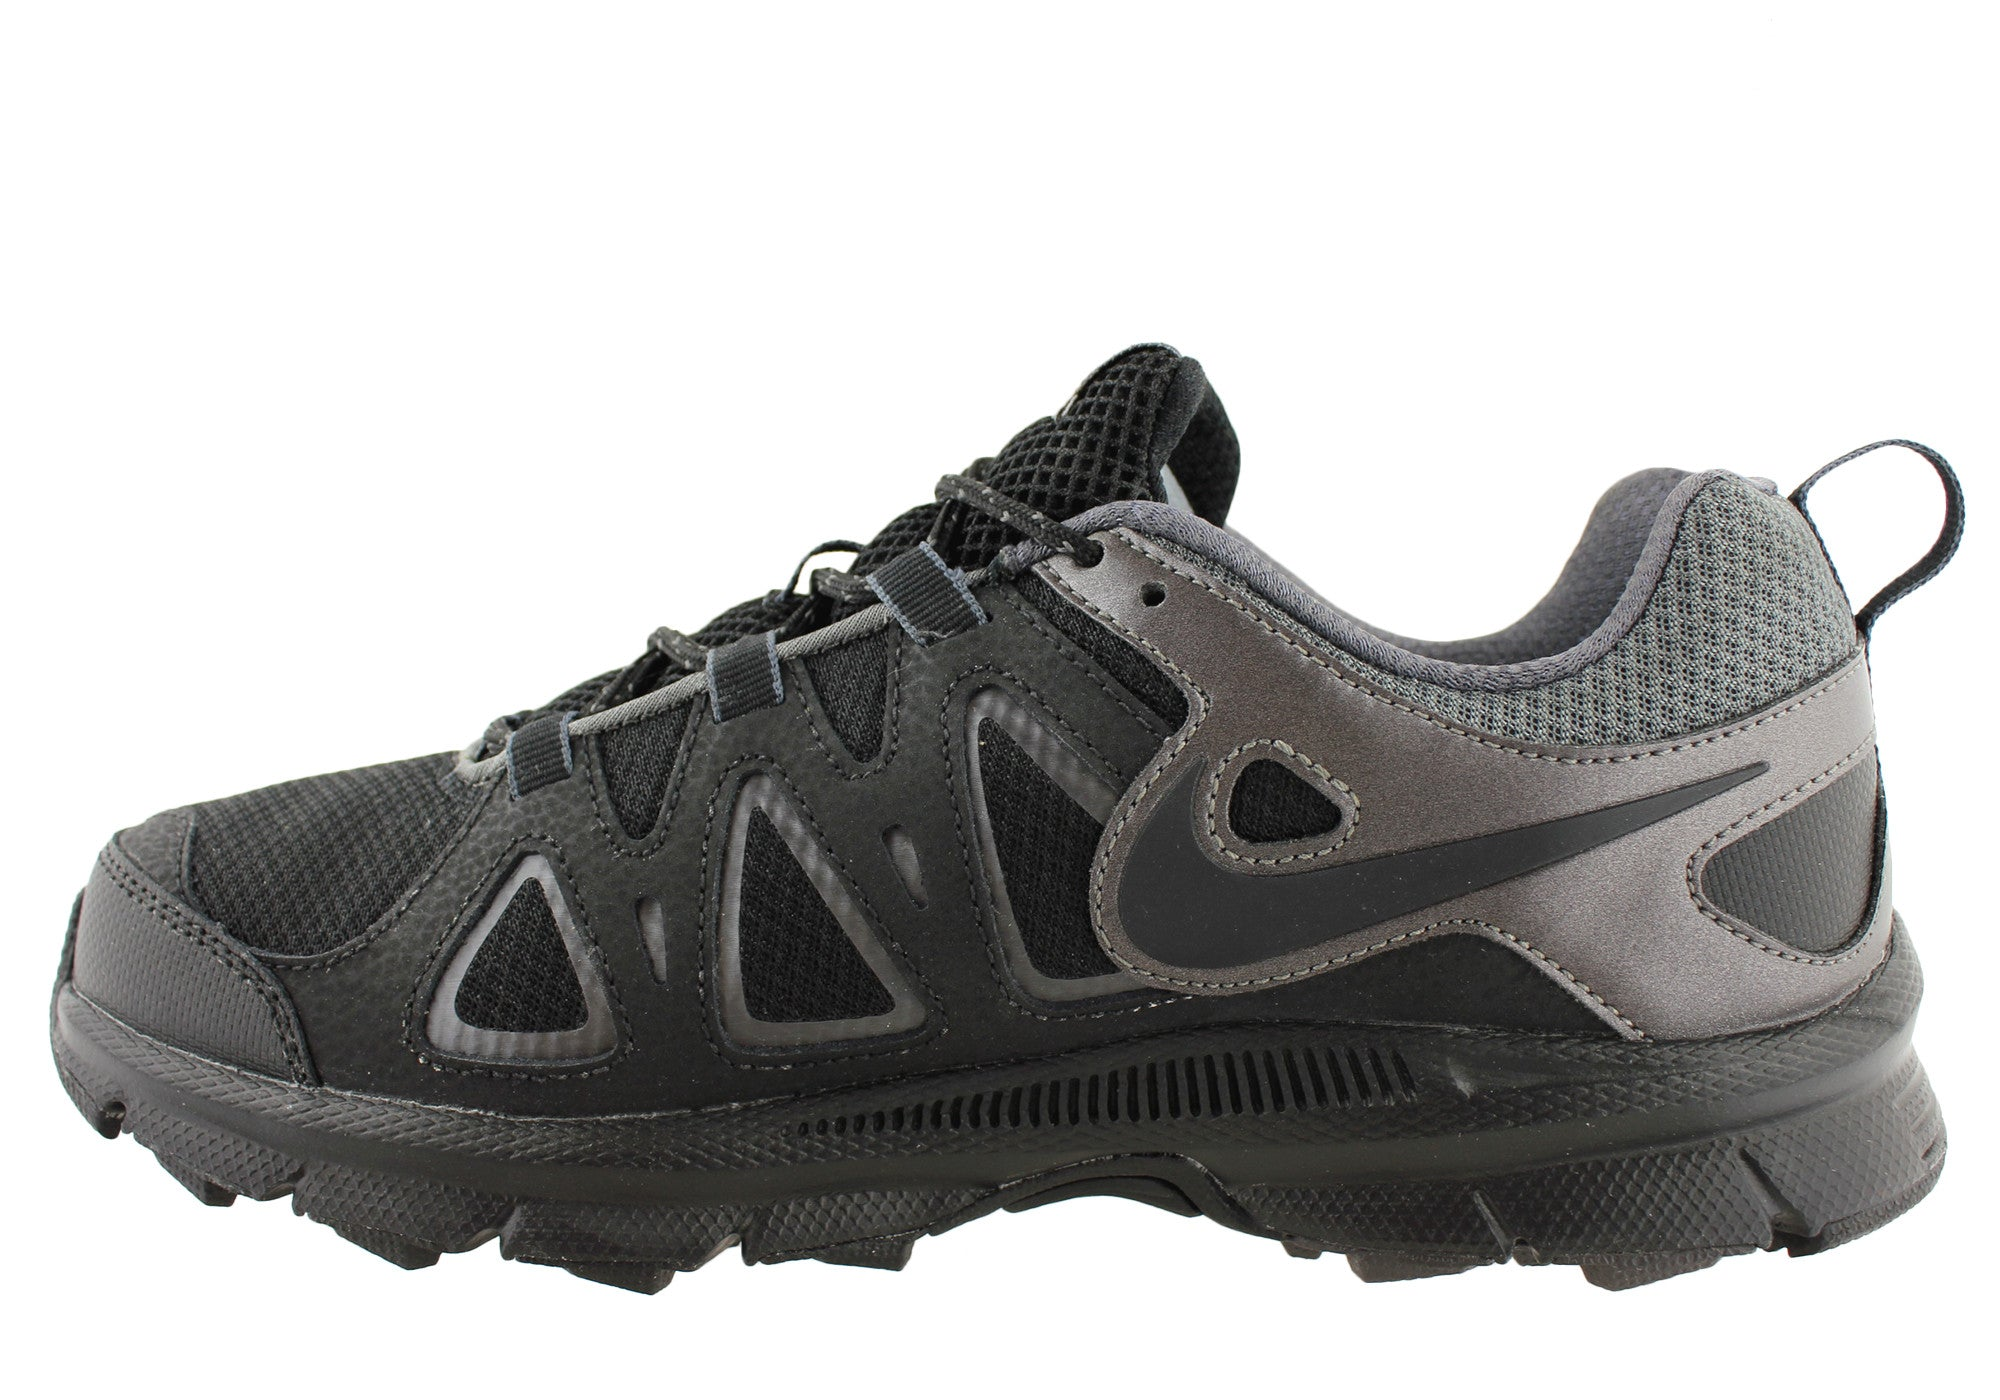 f8e4b647d69 Nike Air Alvord 10 Mens Shoes 4E Wide Width Comfortable Shoes  Black Grey  ...